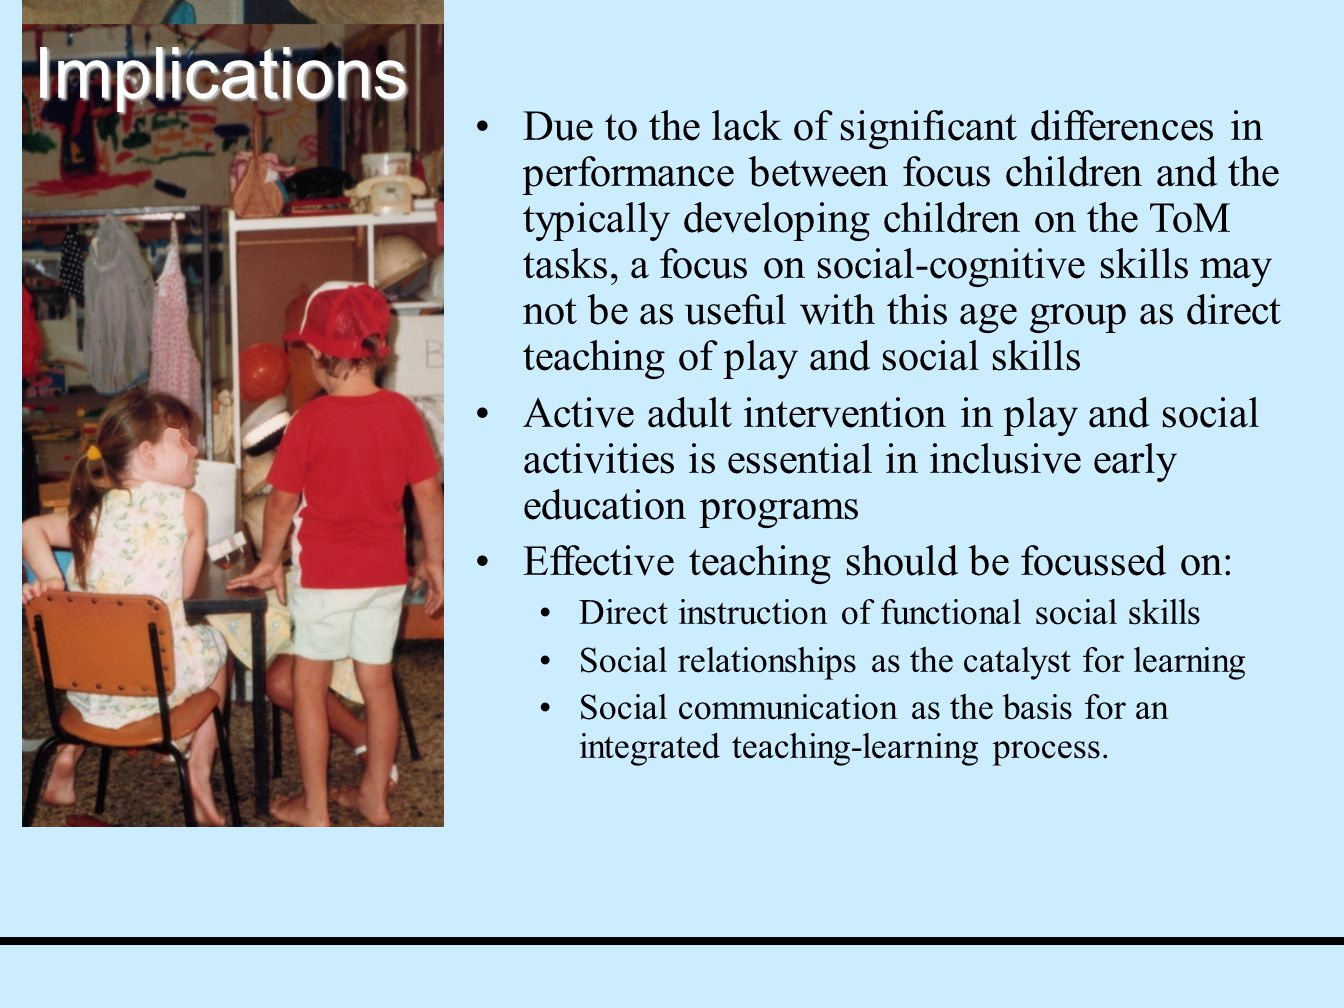 Due to the lack of significant differences in performance between focus children and the typically developing children on the ToM tasks, a focus on social-cognitive skills may not be as useful with this age group as direct teaching of play and social skills Active adult intervention in play and social activities is essential in inclusive early education programs Effective teaching should be focussed on: Direct instruction of functional social skills Social relationships as the catalyst for learning Social communication as the basis for an integrated teaching-learning process.